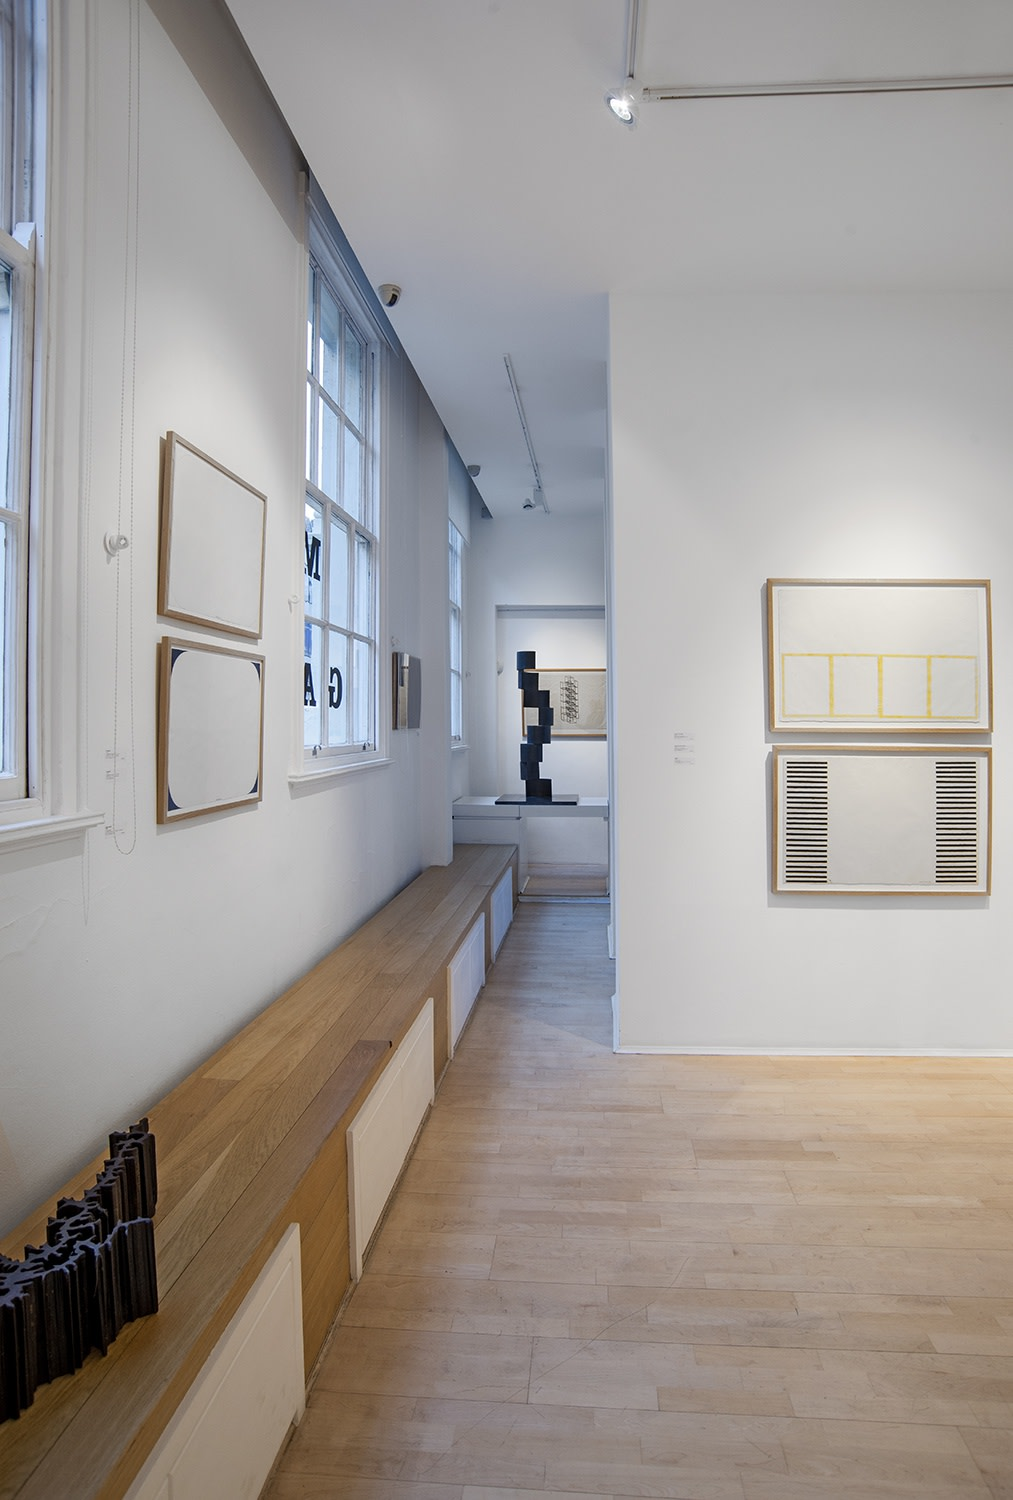 "<span class=""link fancybox-details-link""><a href=""/exhibitions/88/works/image_standalone1542/"">View Detail Page</a></span><p>CAREL VISSER 